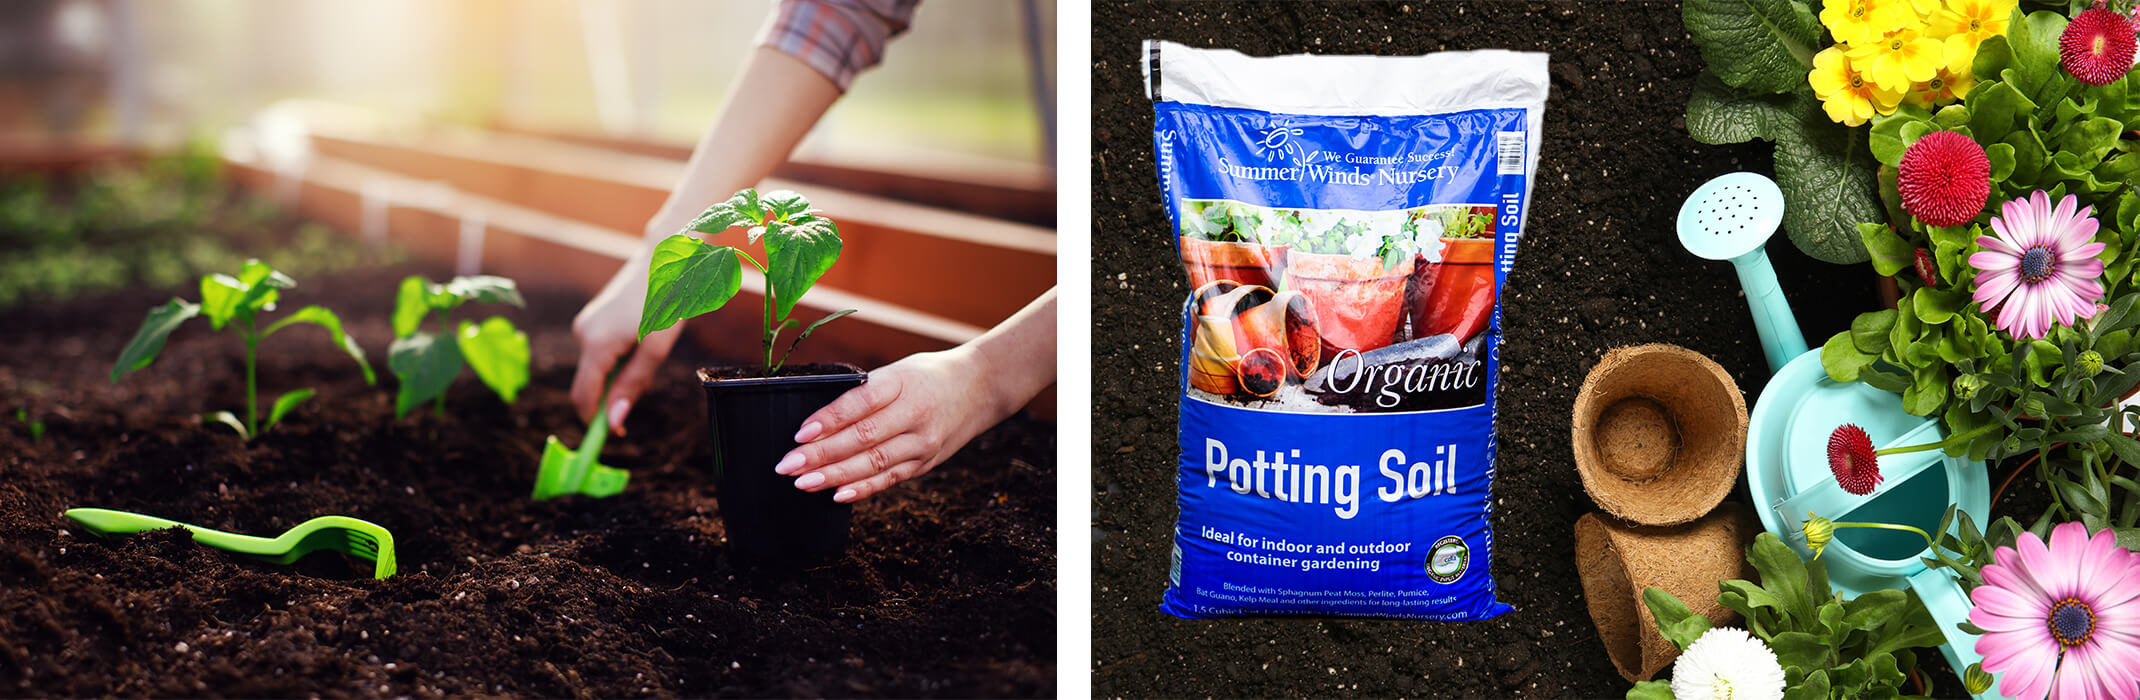 A collage of images: a woman planting new plants in a raised garden bed, a bag of SummerWinds Organic Potting Soil surrounded by fresh soil, pulp pots, a water can and flowers